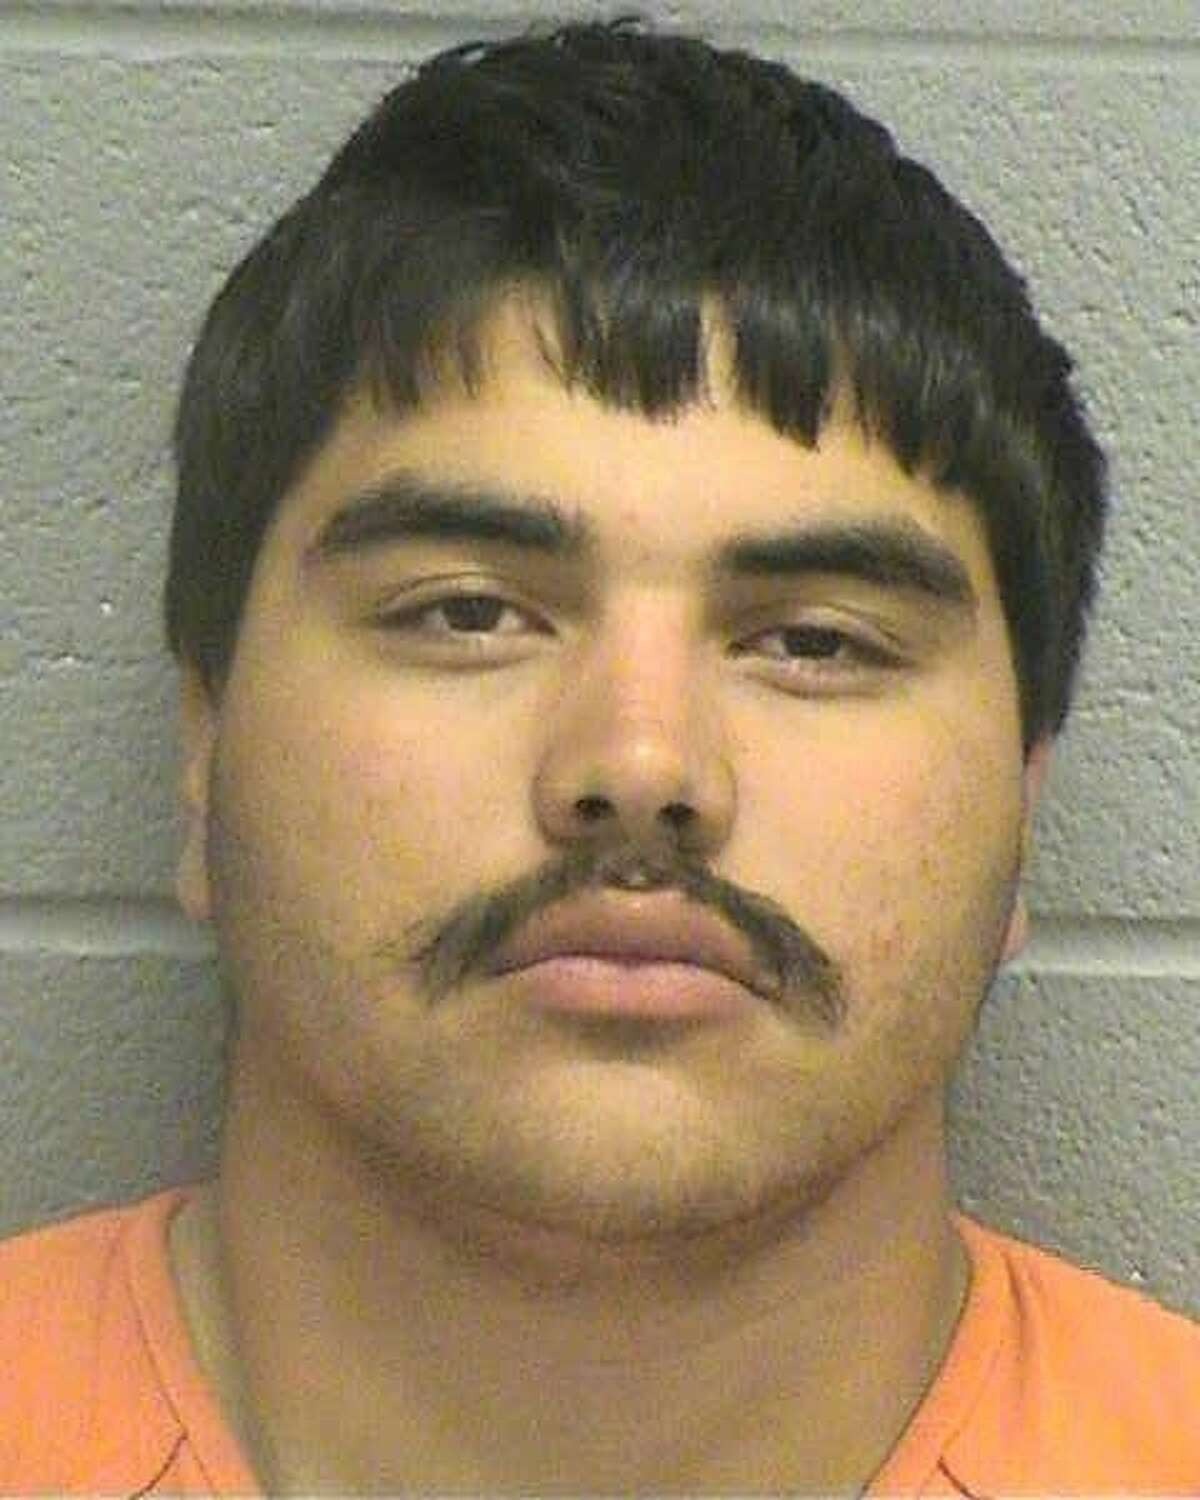 Omar Saenz Jr., 18, was being held Oct.12 on a $25,000 bond for the second-degree felony charge of aggravated assault with a deadly weapon.Saenz wasarrested Oct.9 after allegedly beating another man over the head with a glass beer bottle.